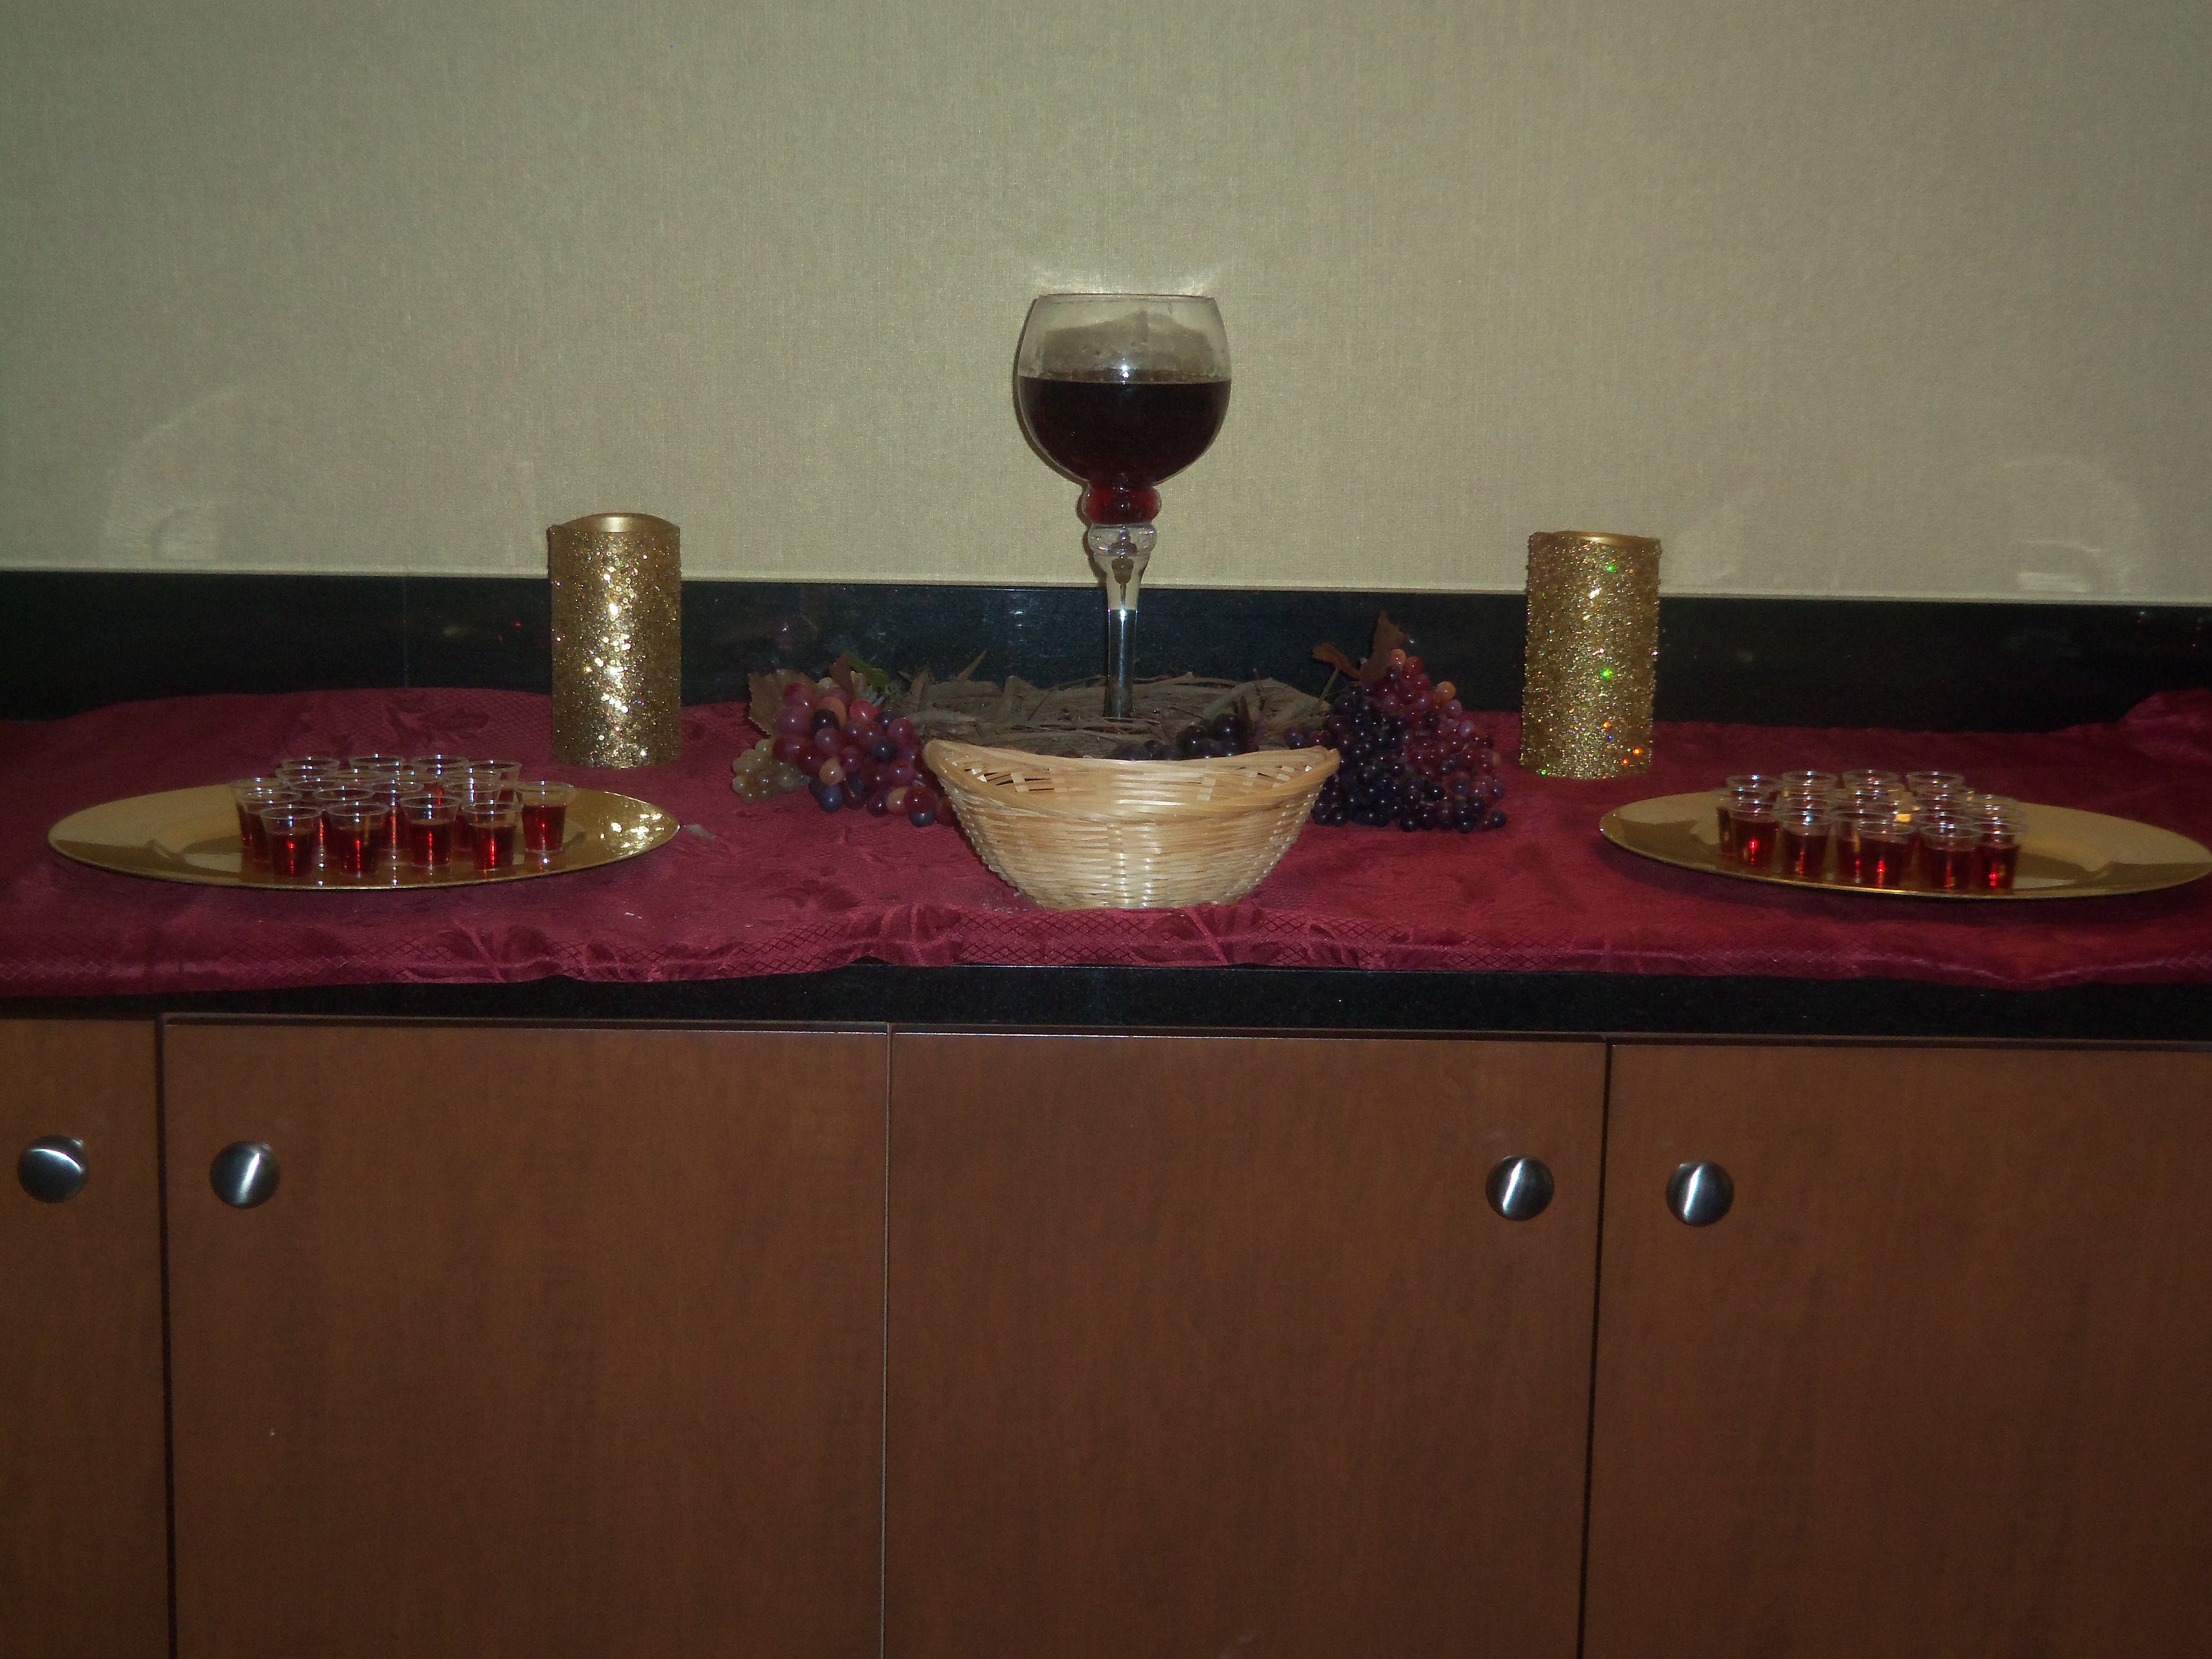 Ready to honor Christ with the Lord's Supper